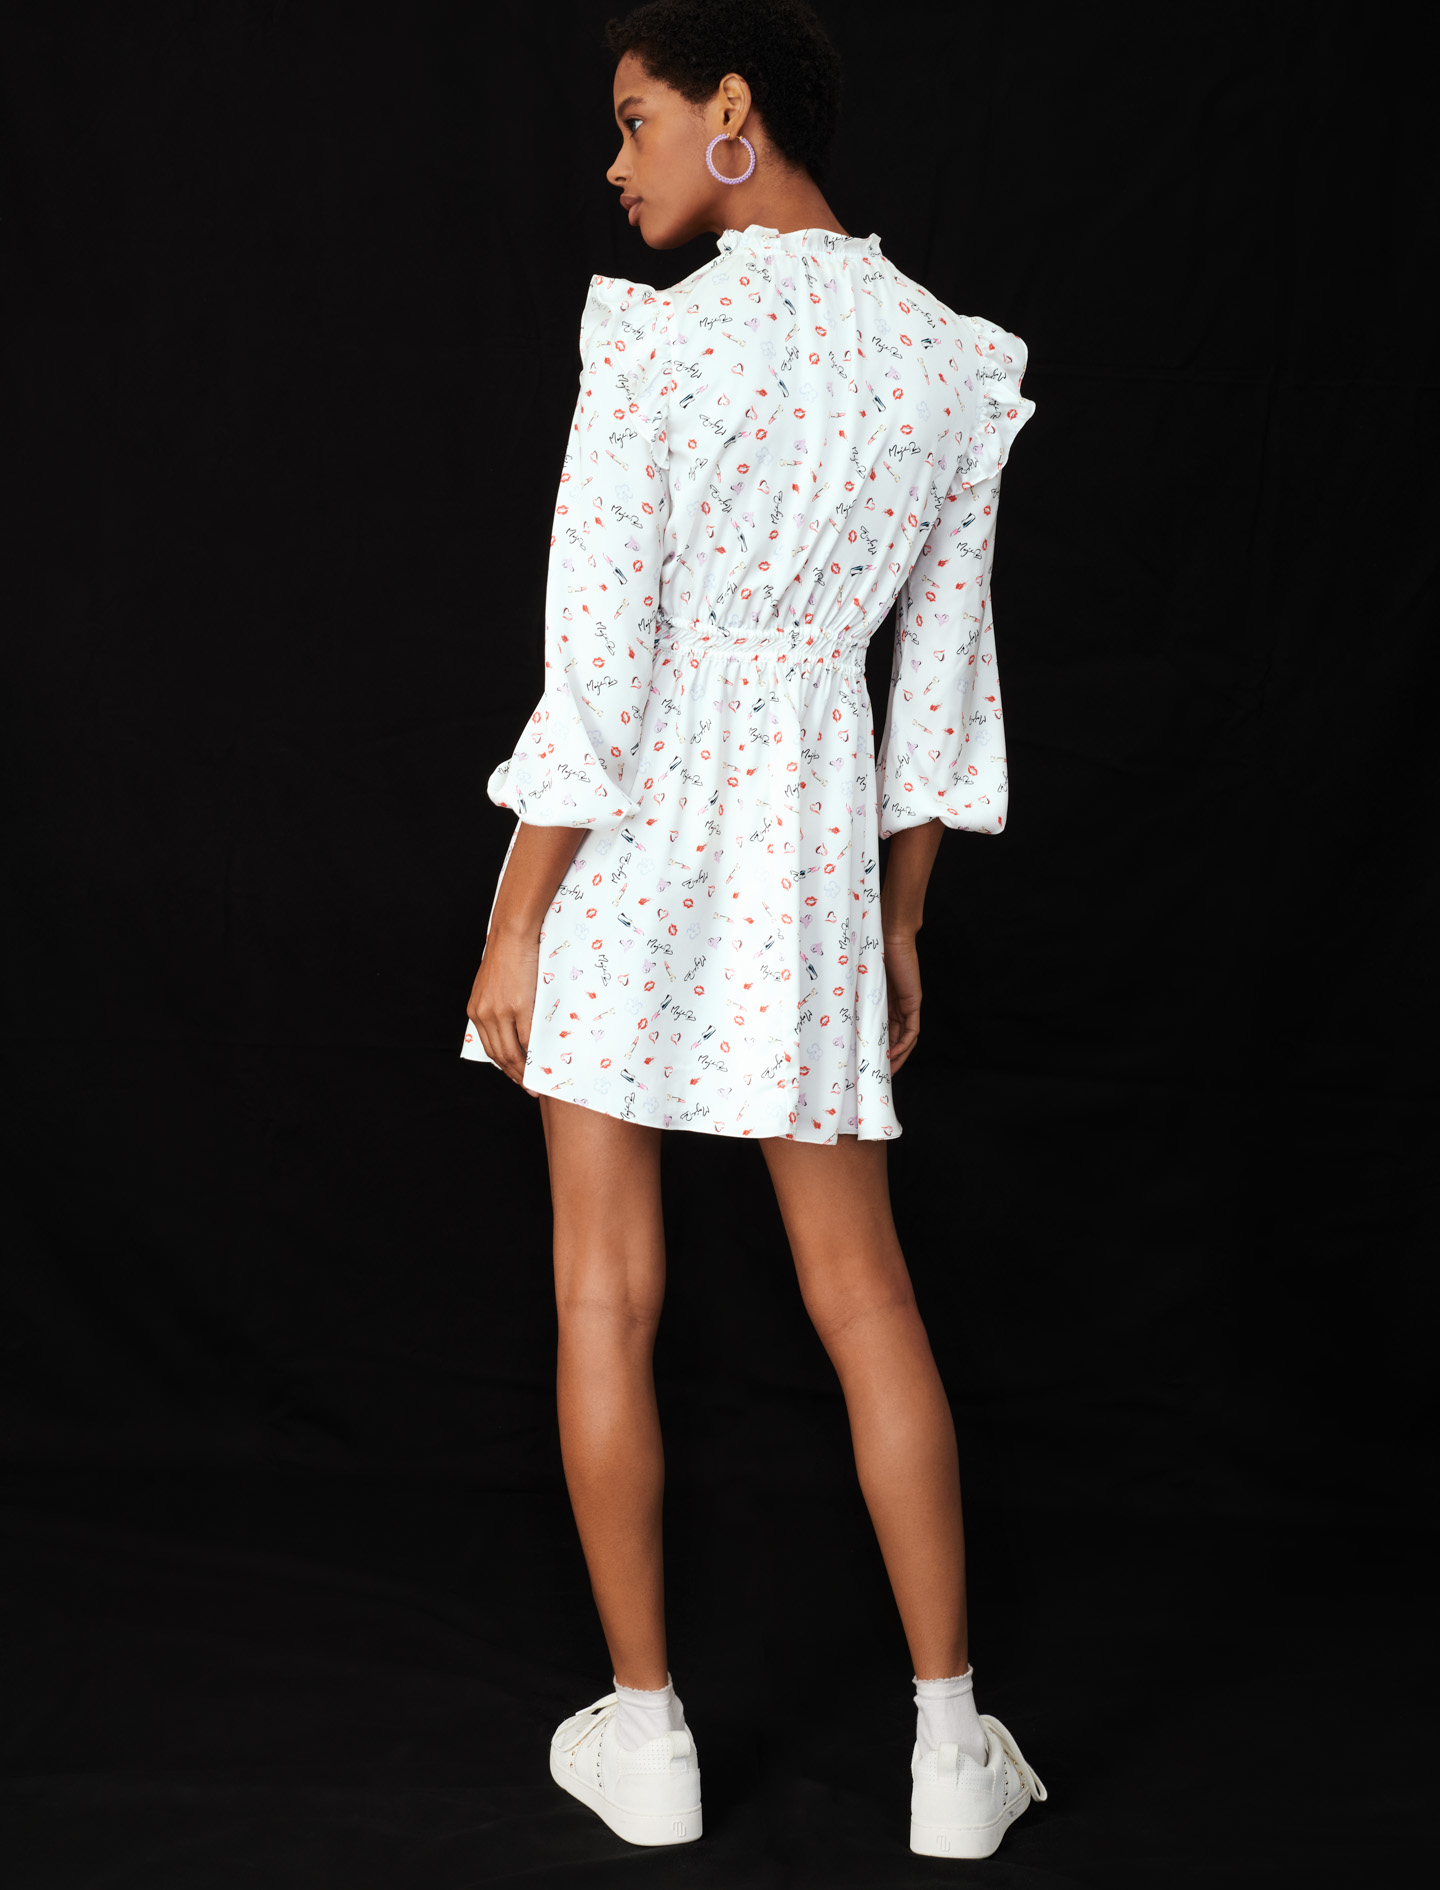 Maje White Dress with long sleeves and ruffles